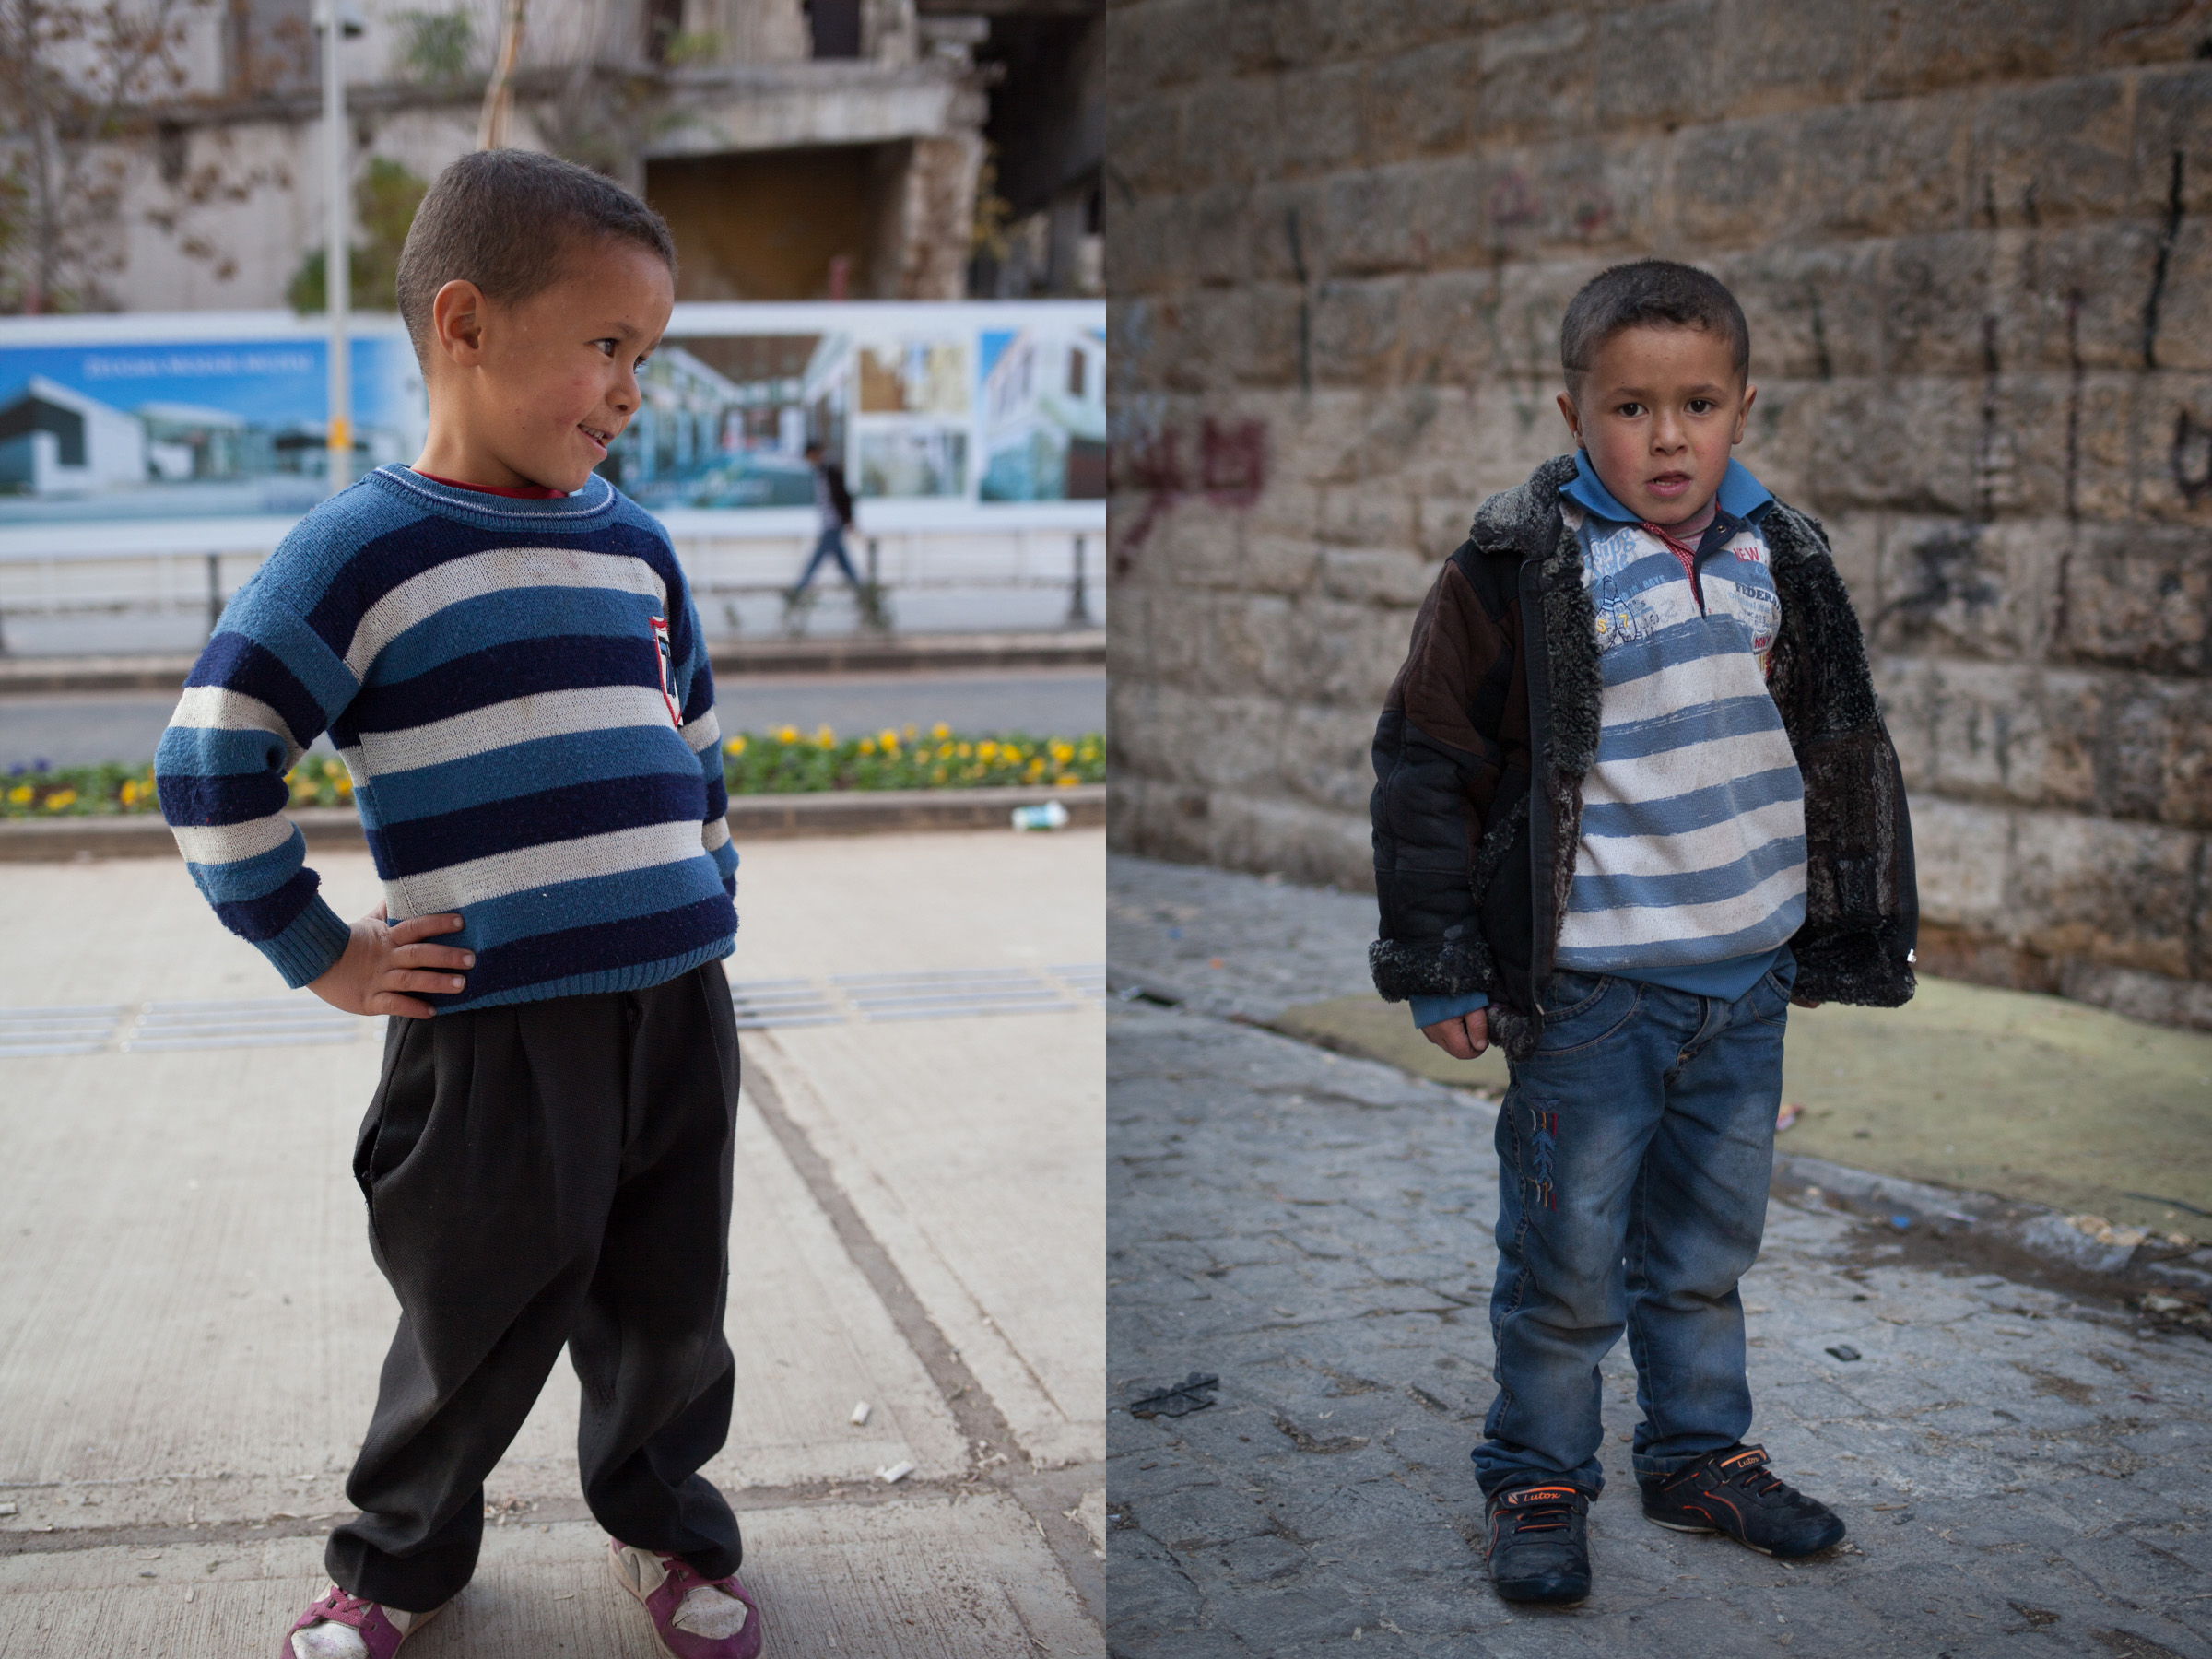 Ahmad Syrian Refugee Boy in Gaziantep Turkey Emily Troutman